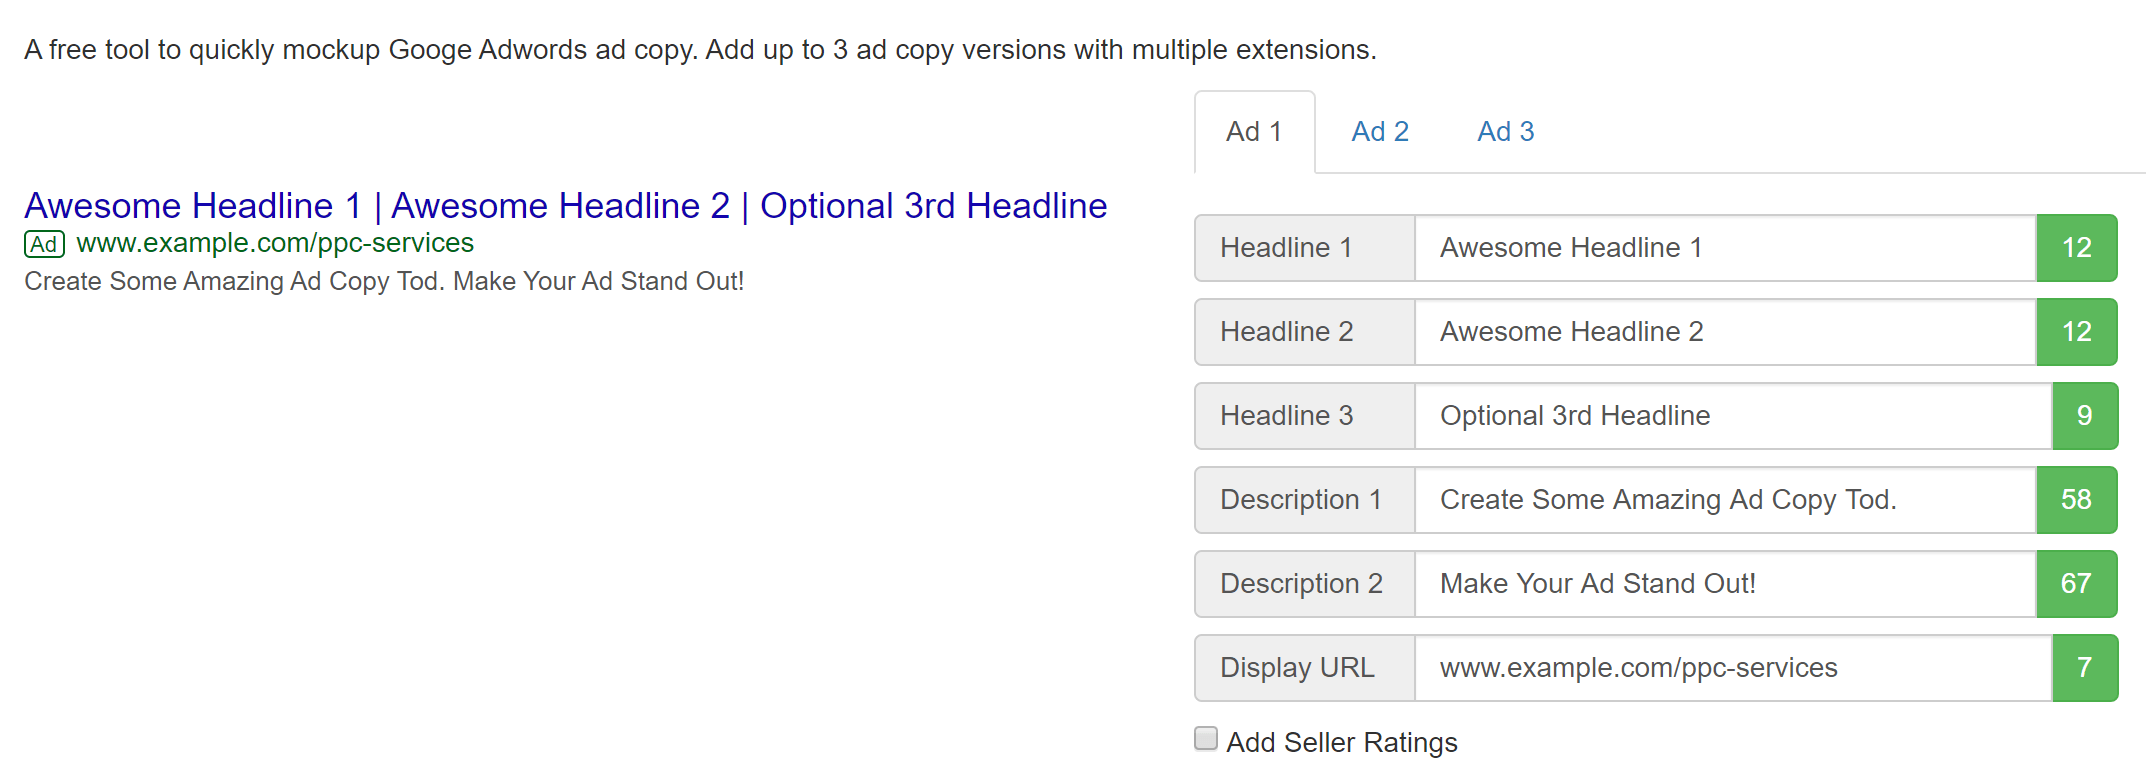 This tool lets you see what your ads will look like once they are displayed in Google Ads search results